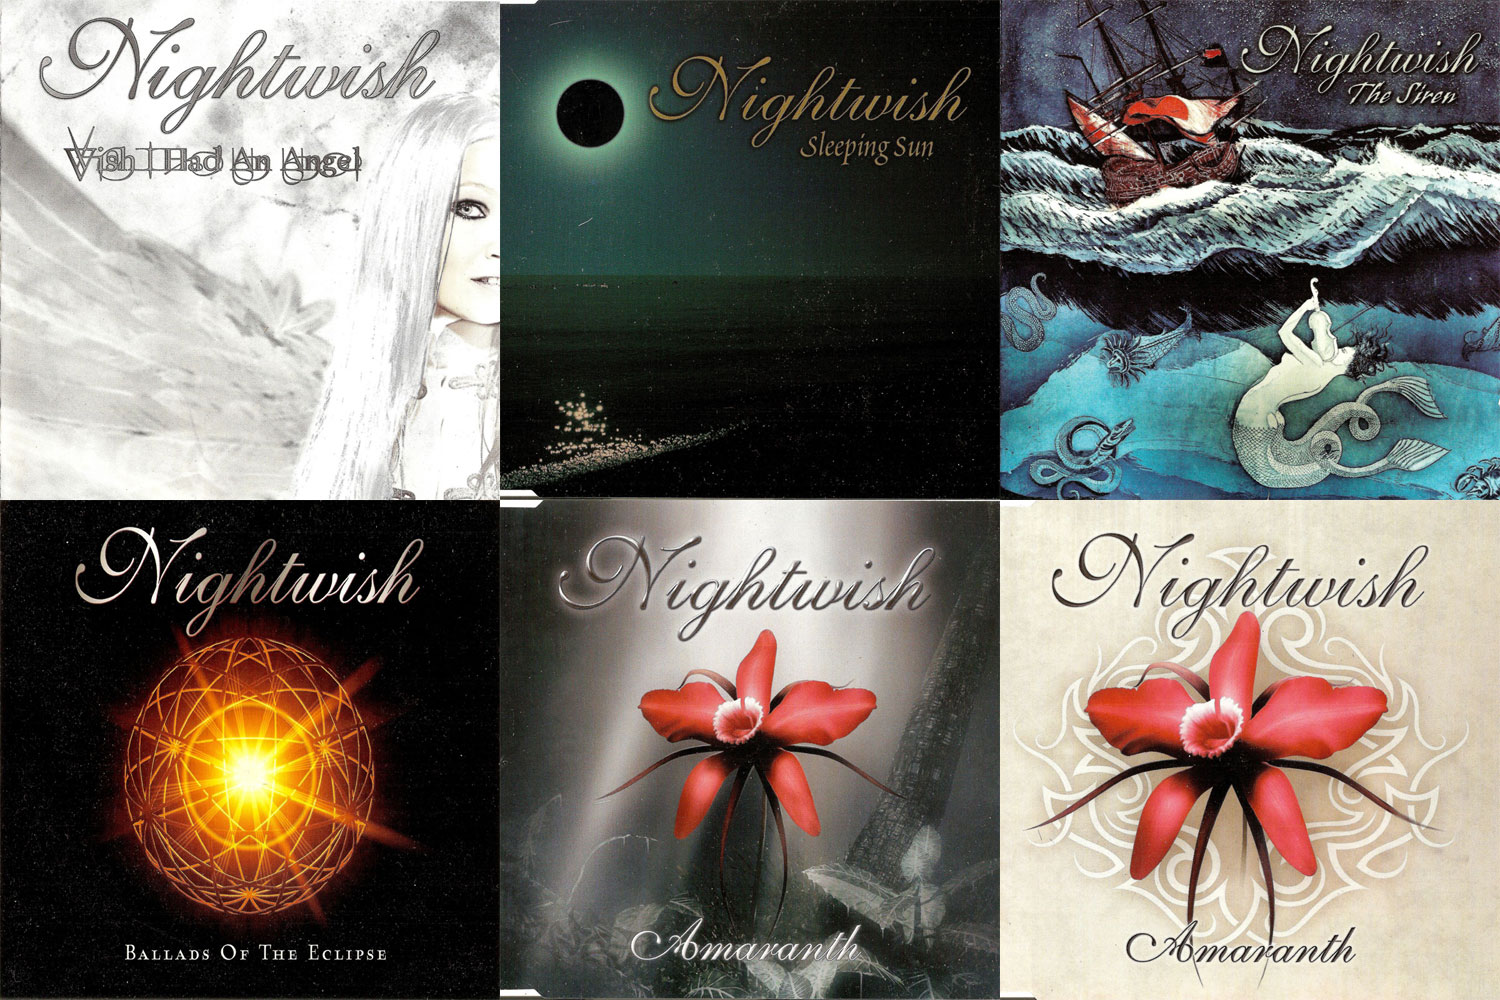 Nightwish: Singles & EP's Collection part 2 (2004 - 2007